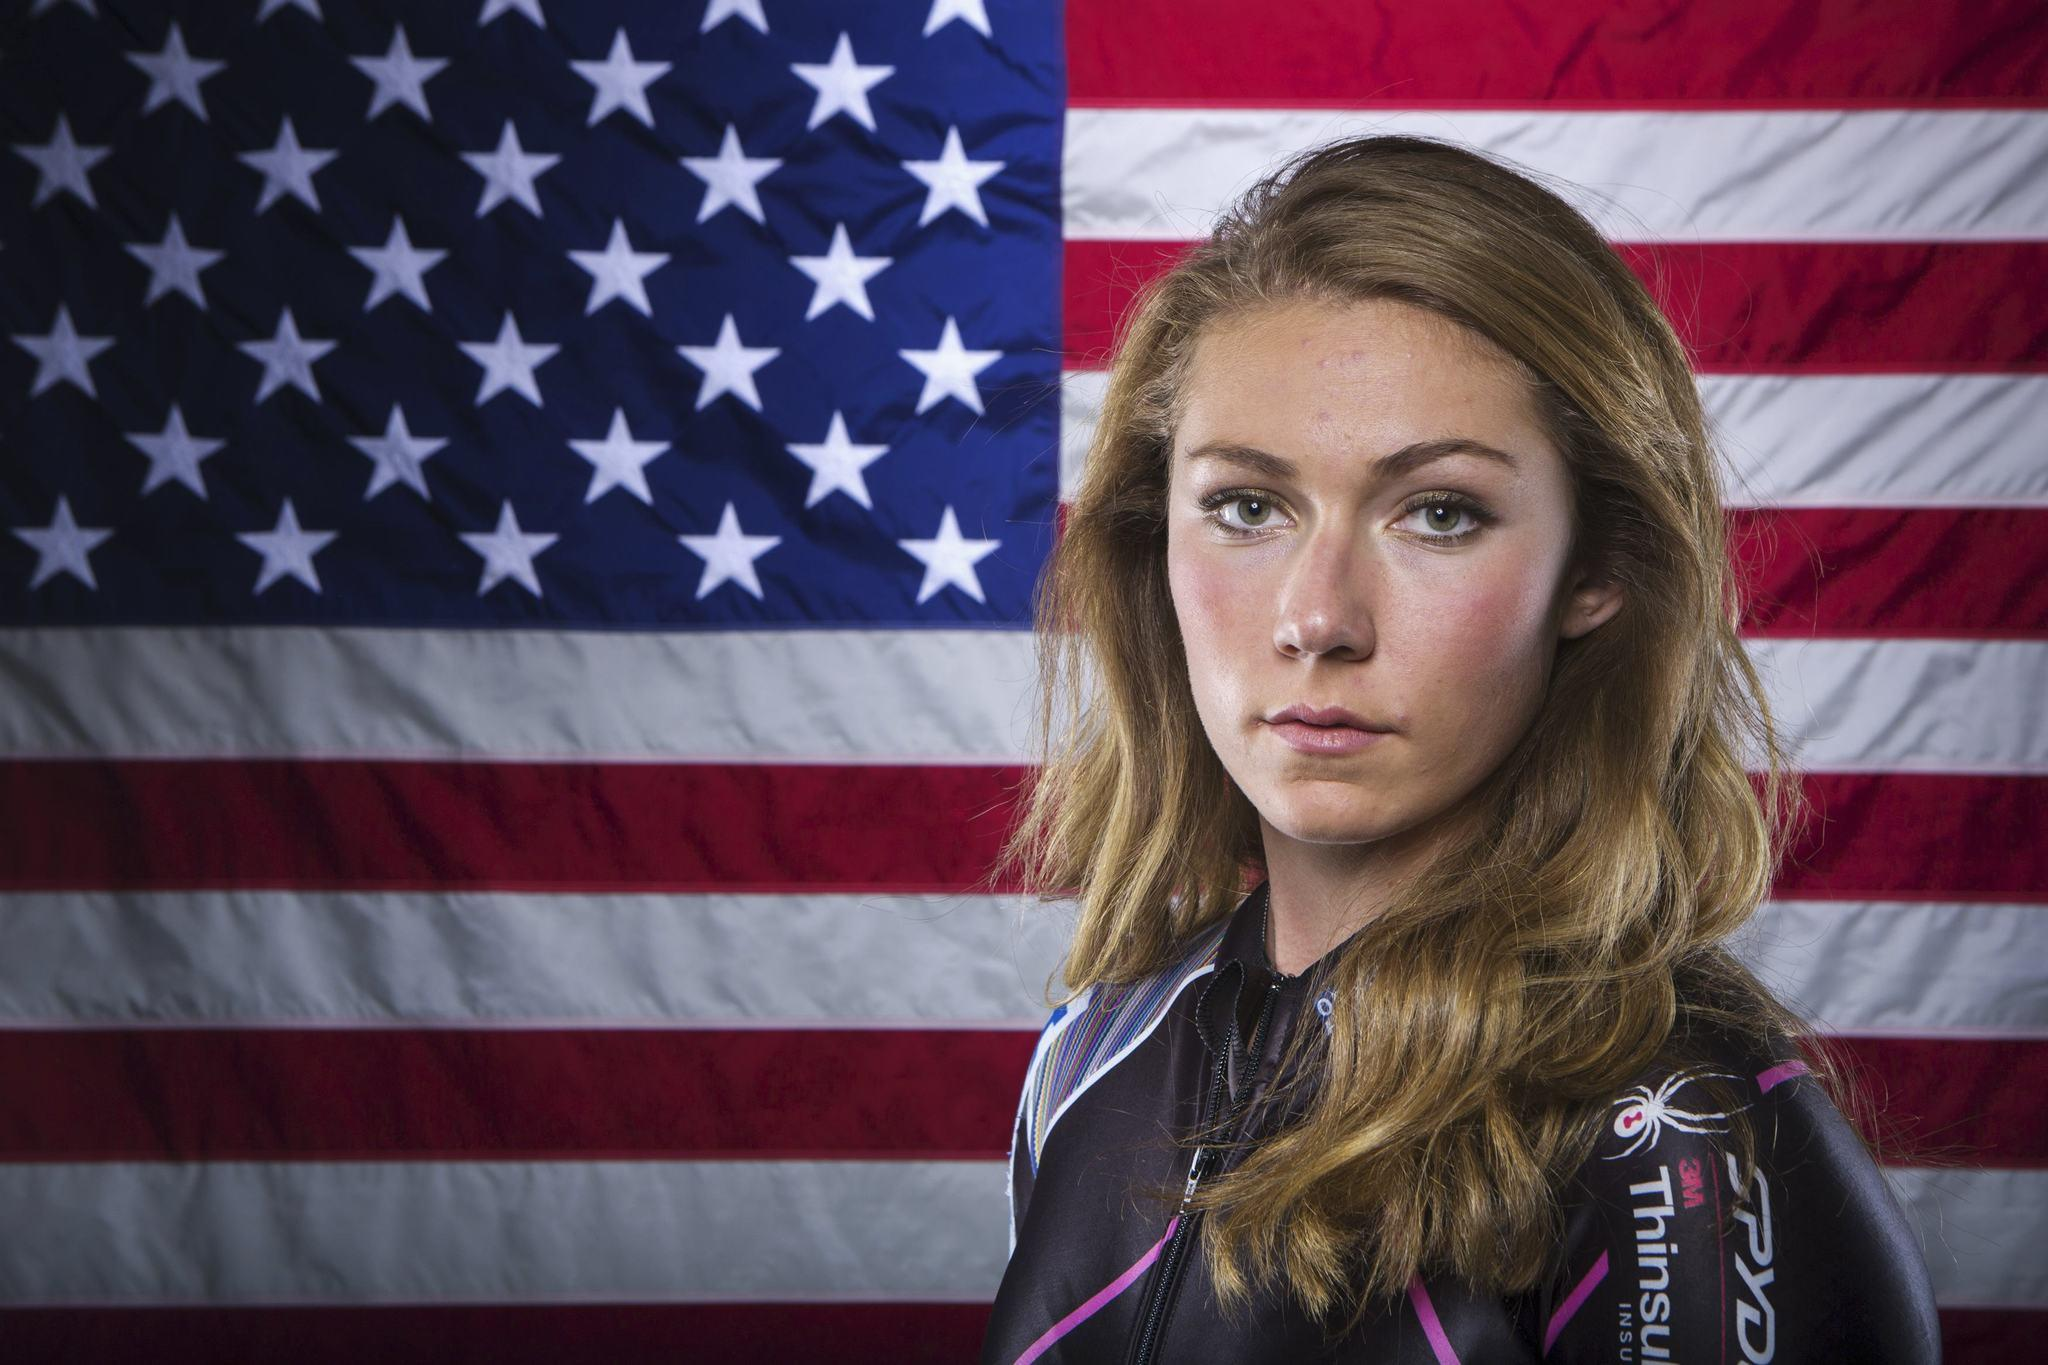 Mikaela Shiffrin poses for a portrait during the 2013 U.S. Olympic Team Media Summit in Park City, Utah. (Lucas Jackson/Reuters Photo)